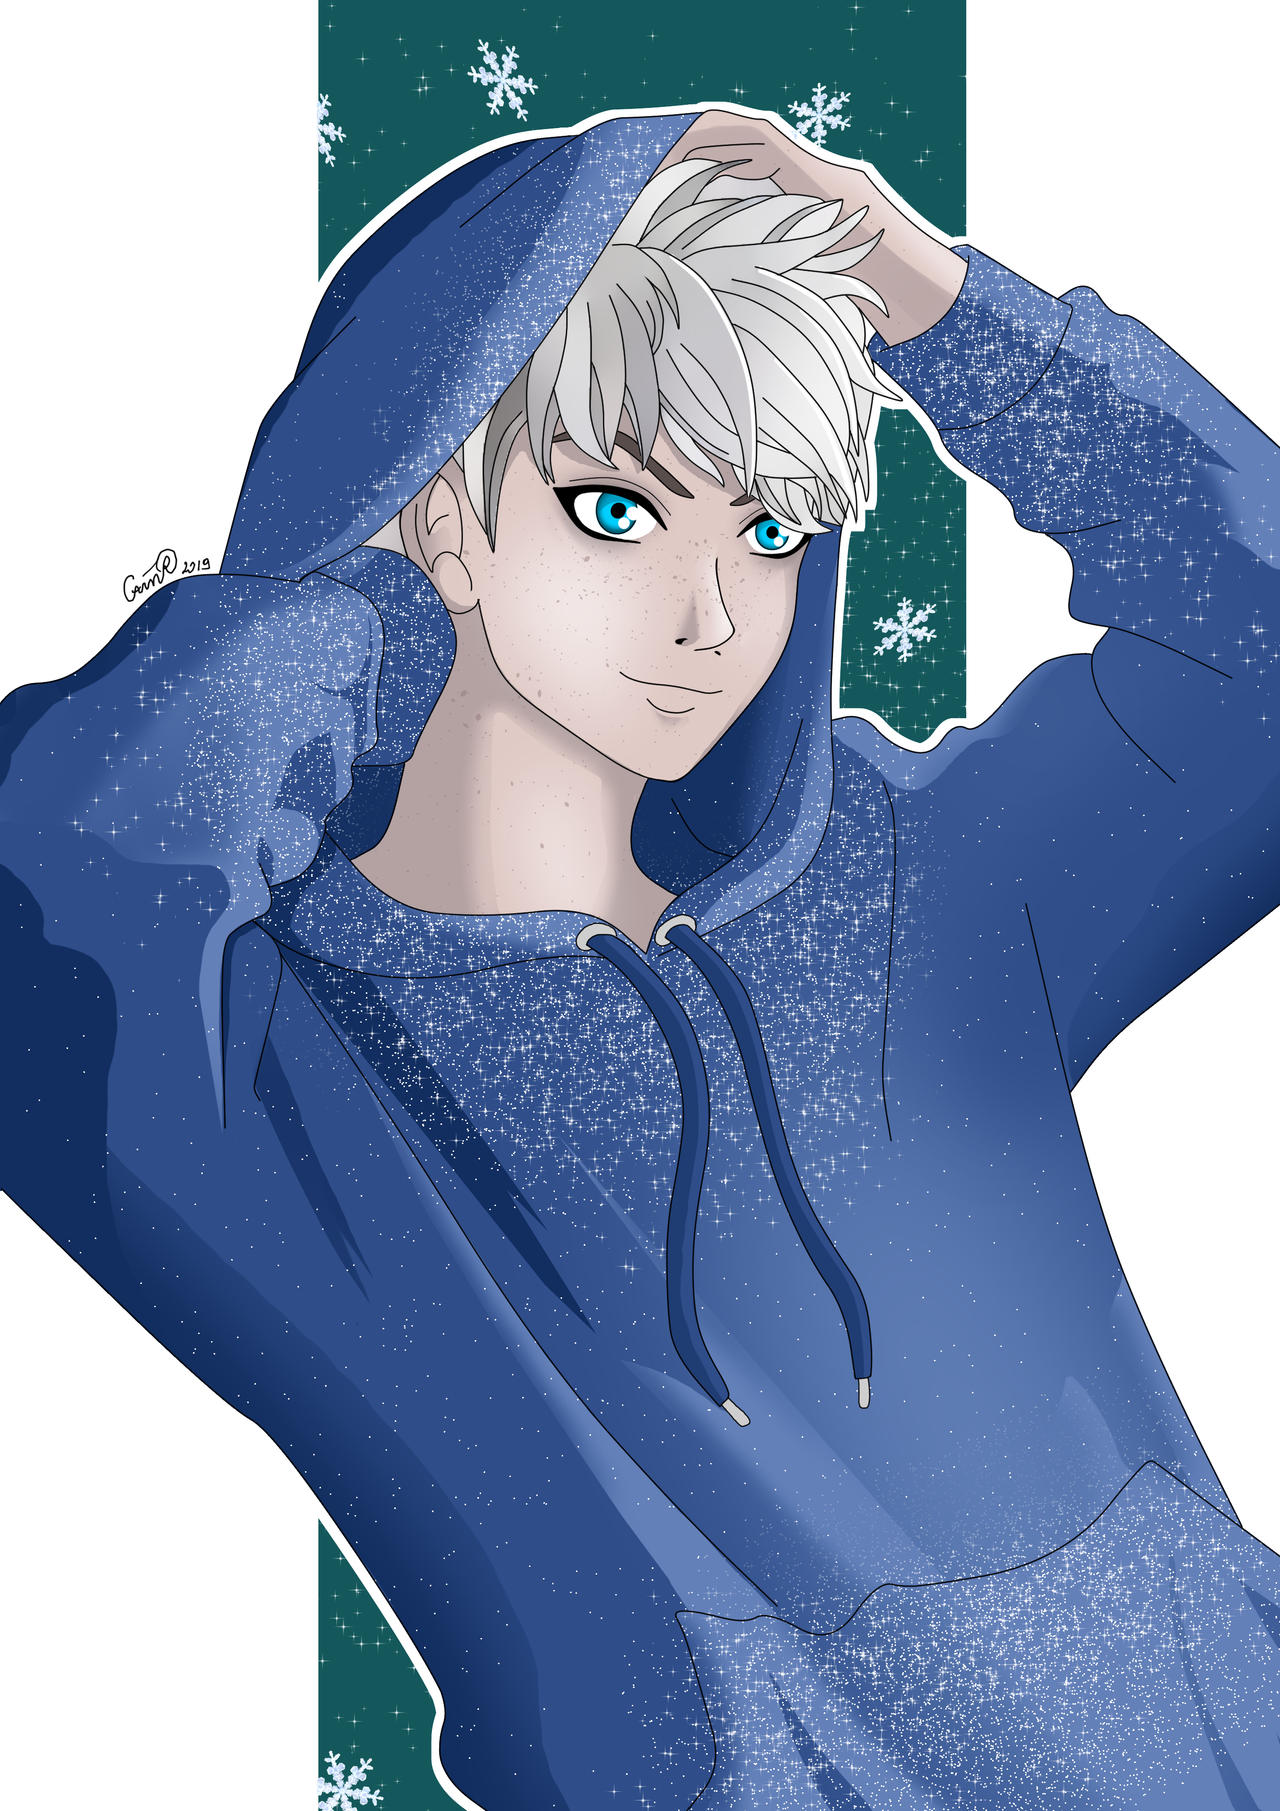 My Name Is Frost Jack Frost By Cain88 On Deviantart